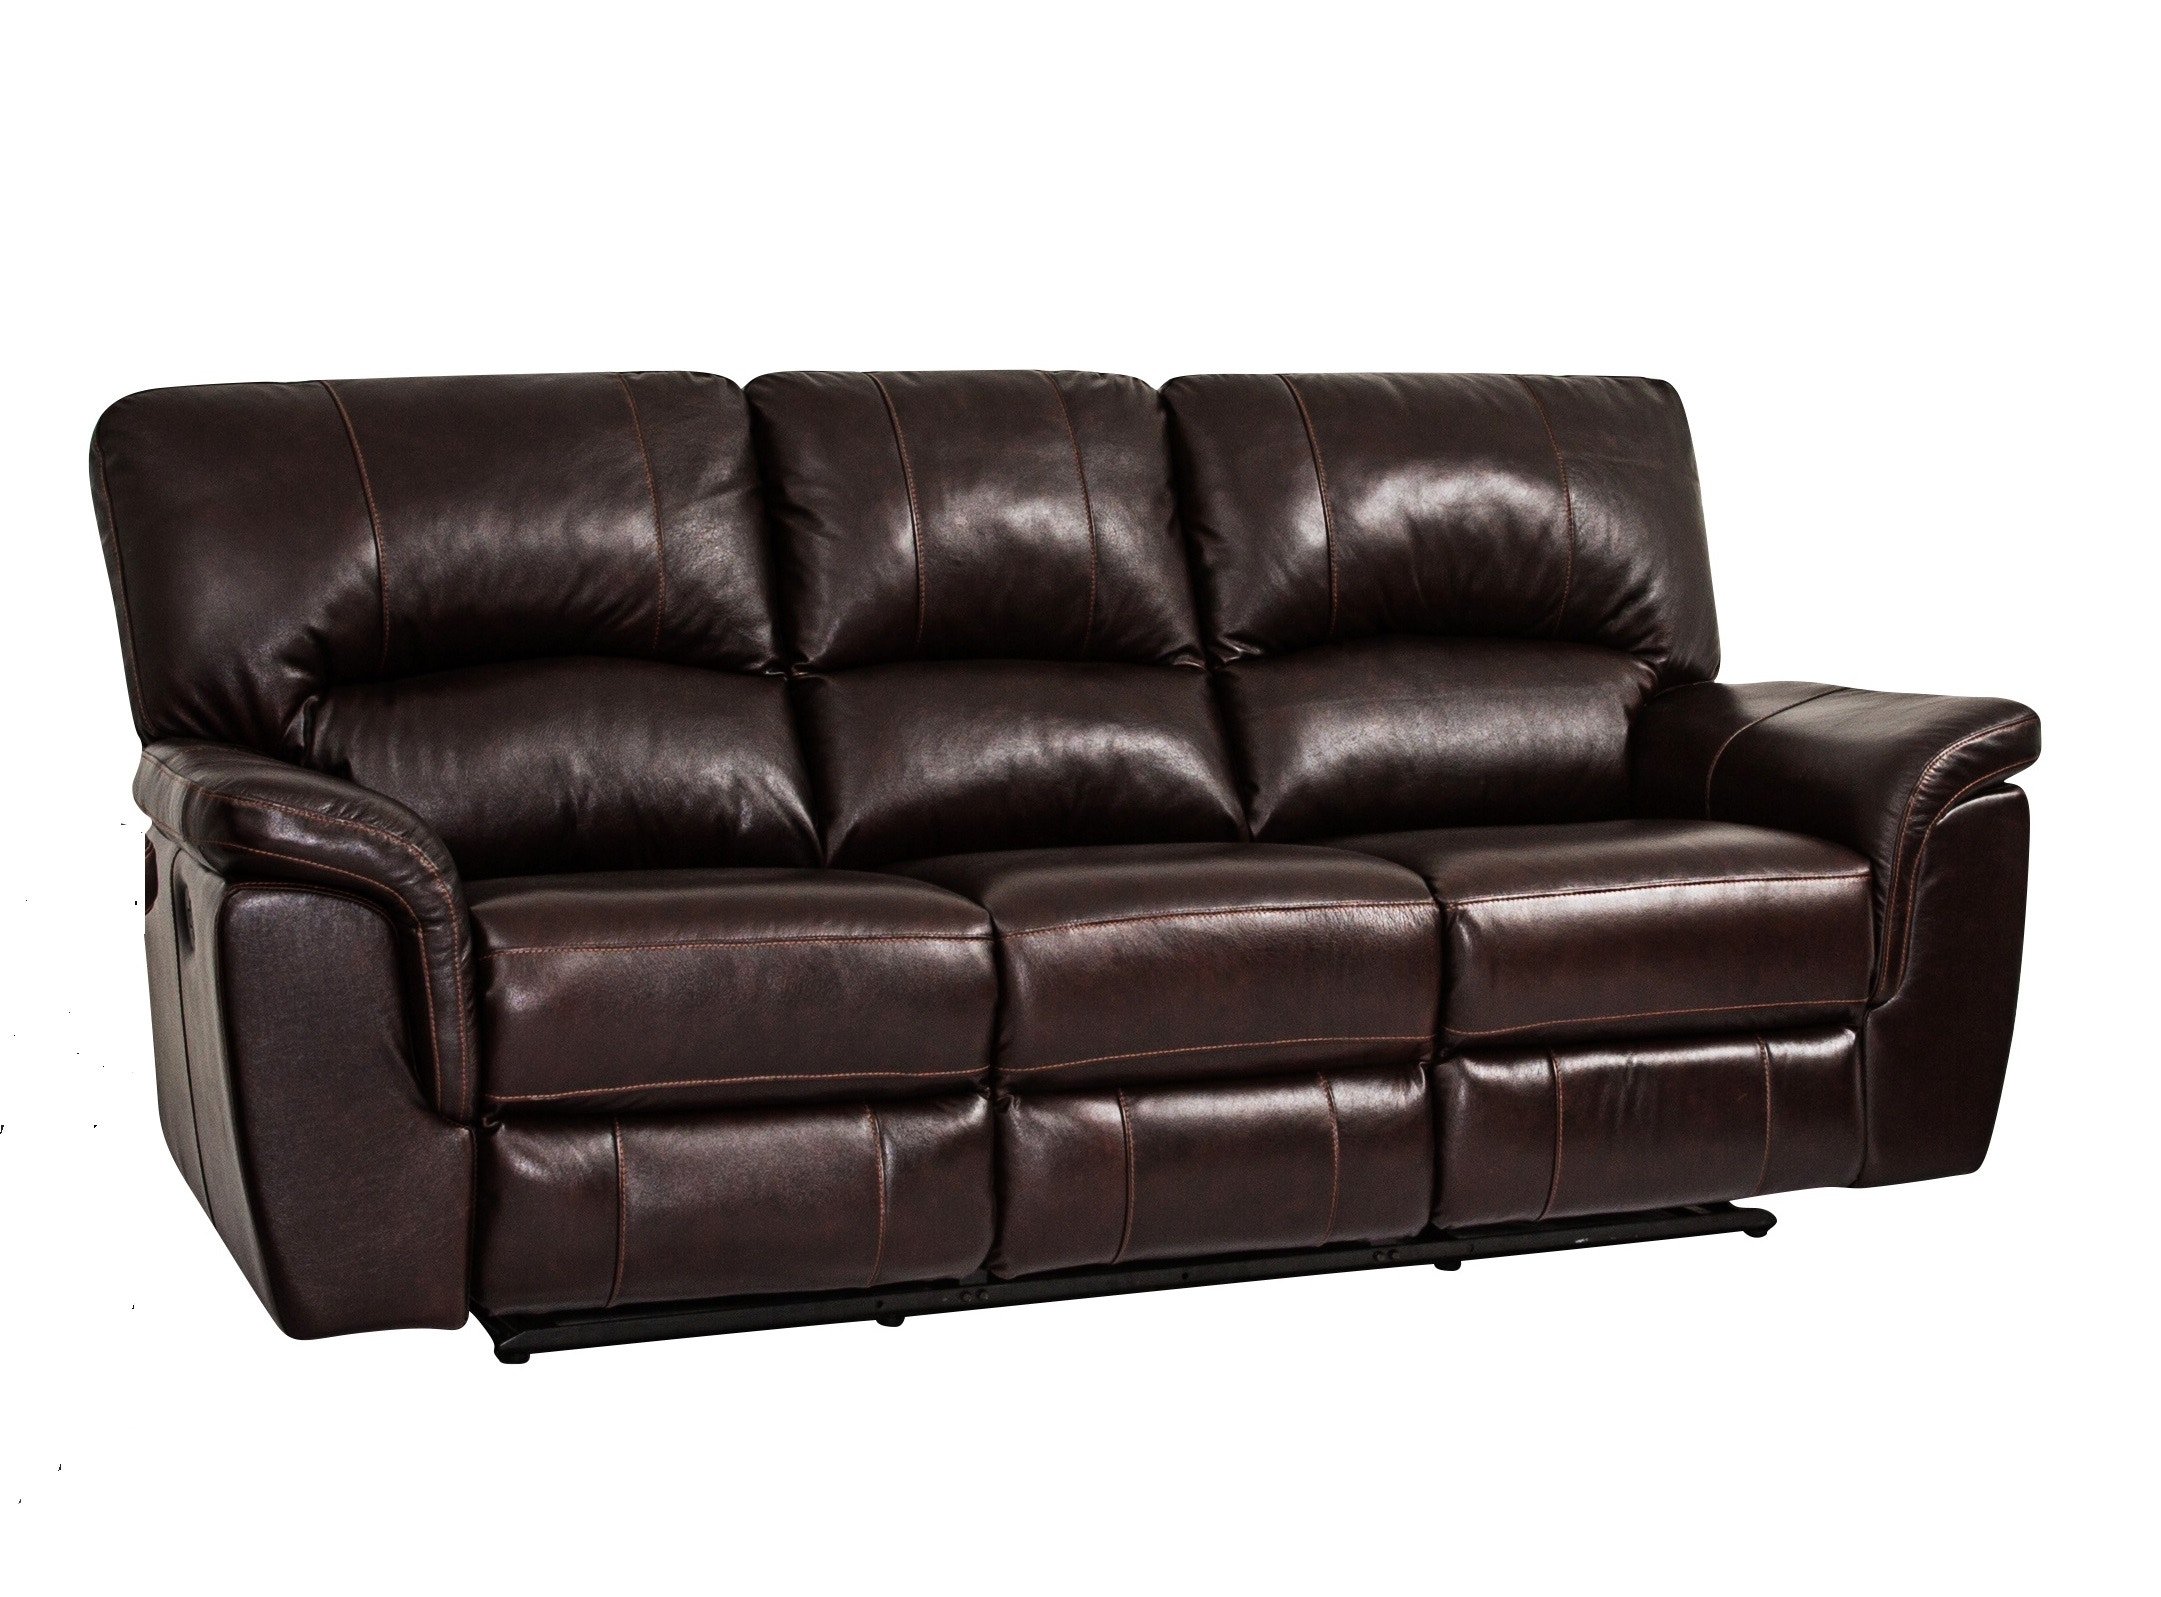 Merveilleux 202015. Reclining Leather Sofa